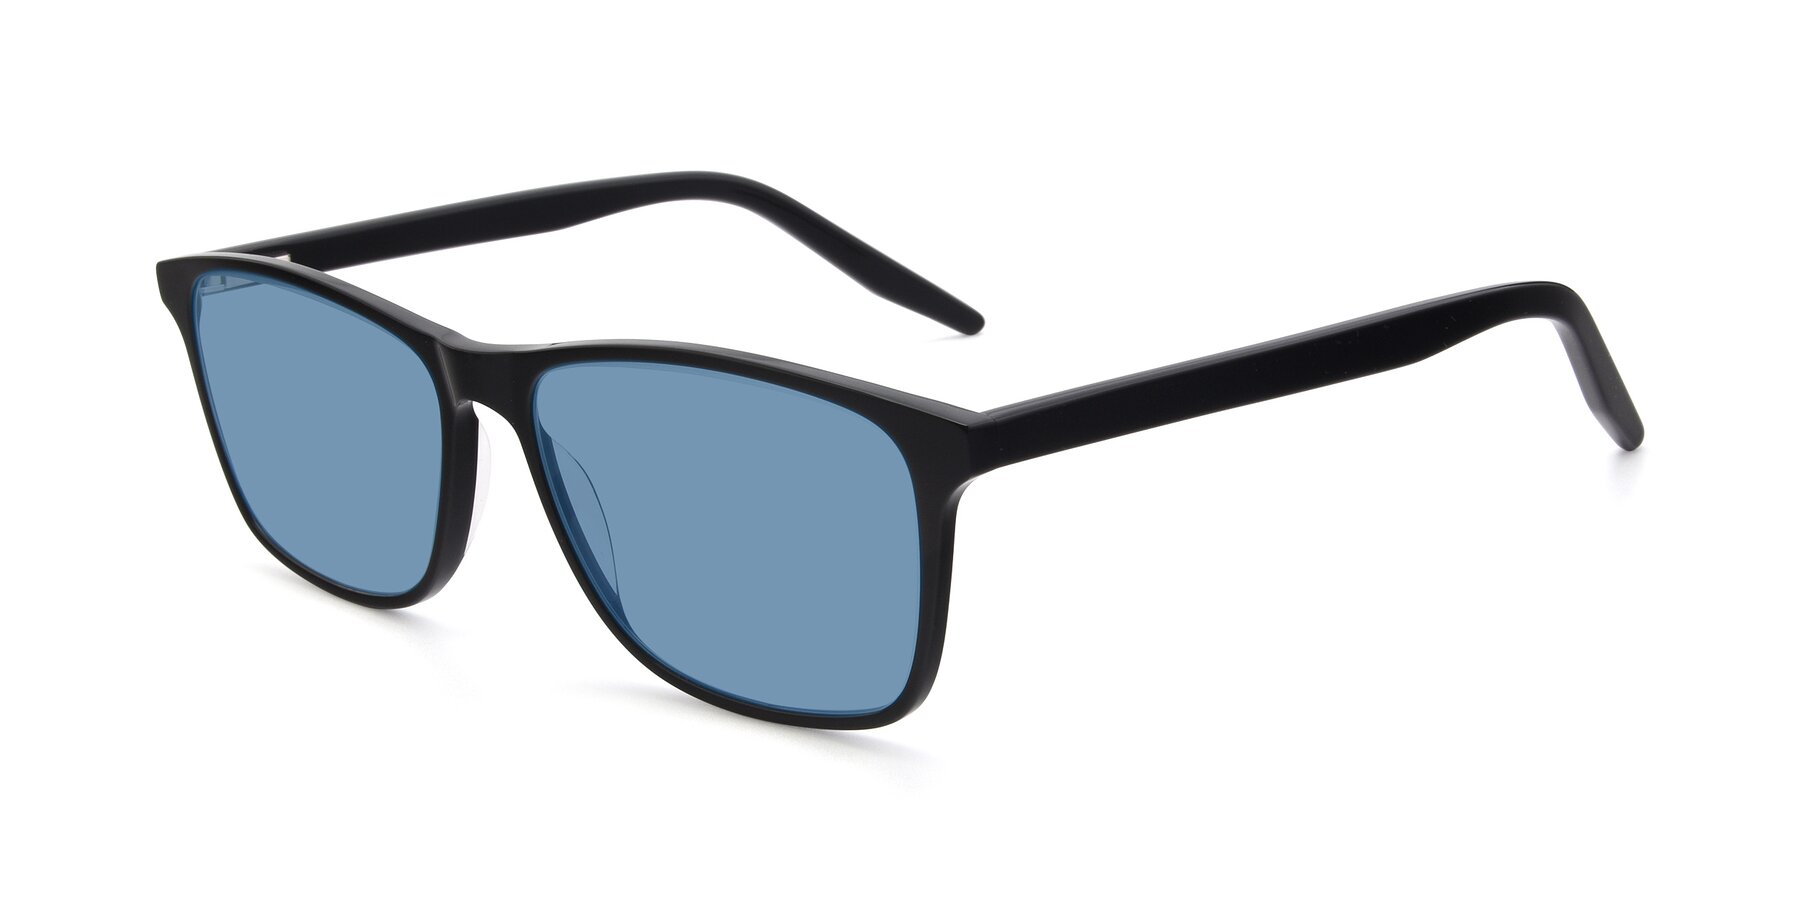 Angle of 17500 in Black with Medium Blue Tinted Lenses